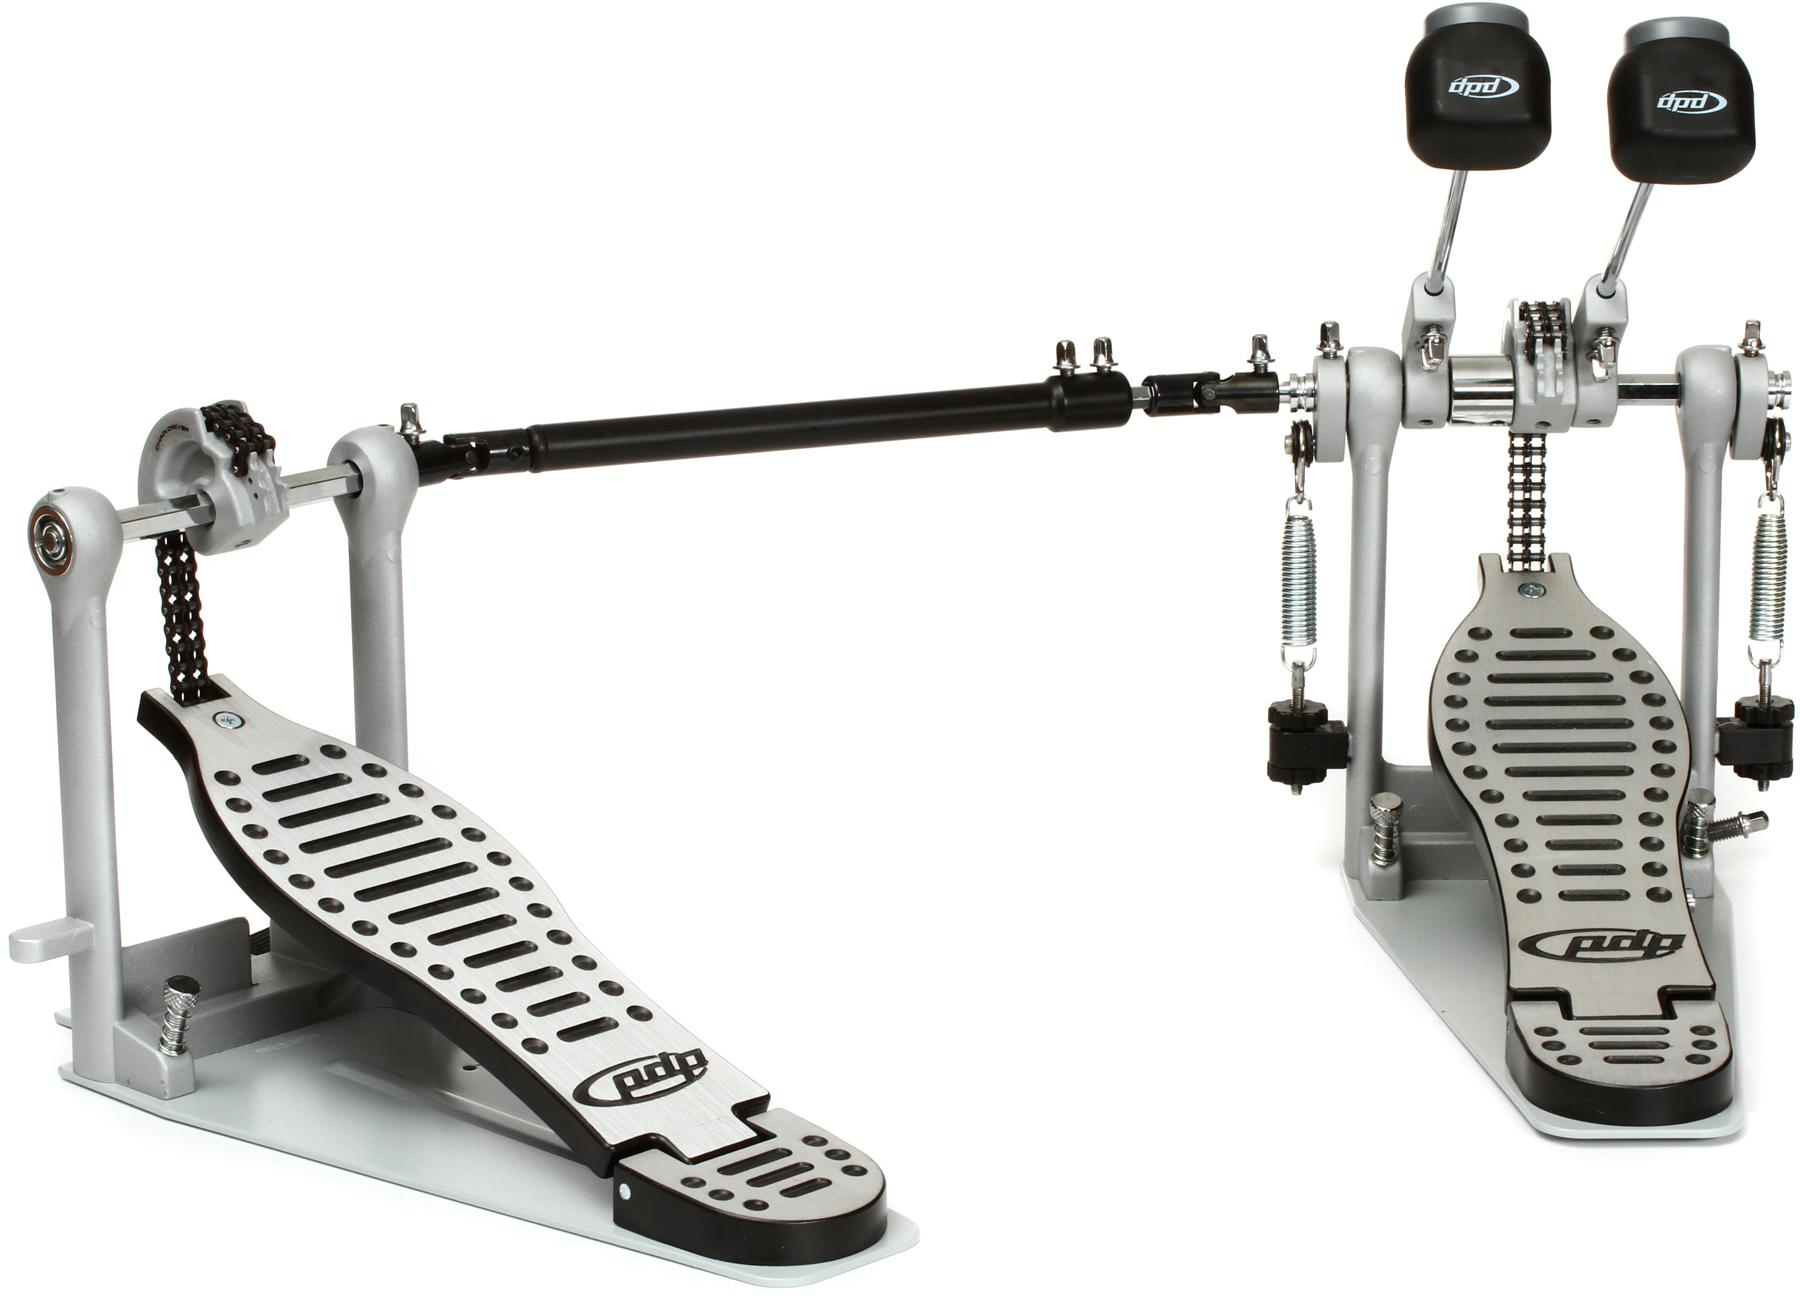 3. PDP Hardware Sale (Including this Double Bass Drum Pedal)